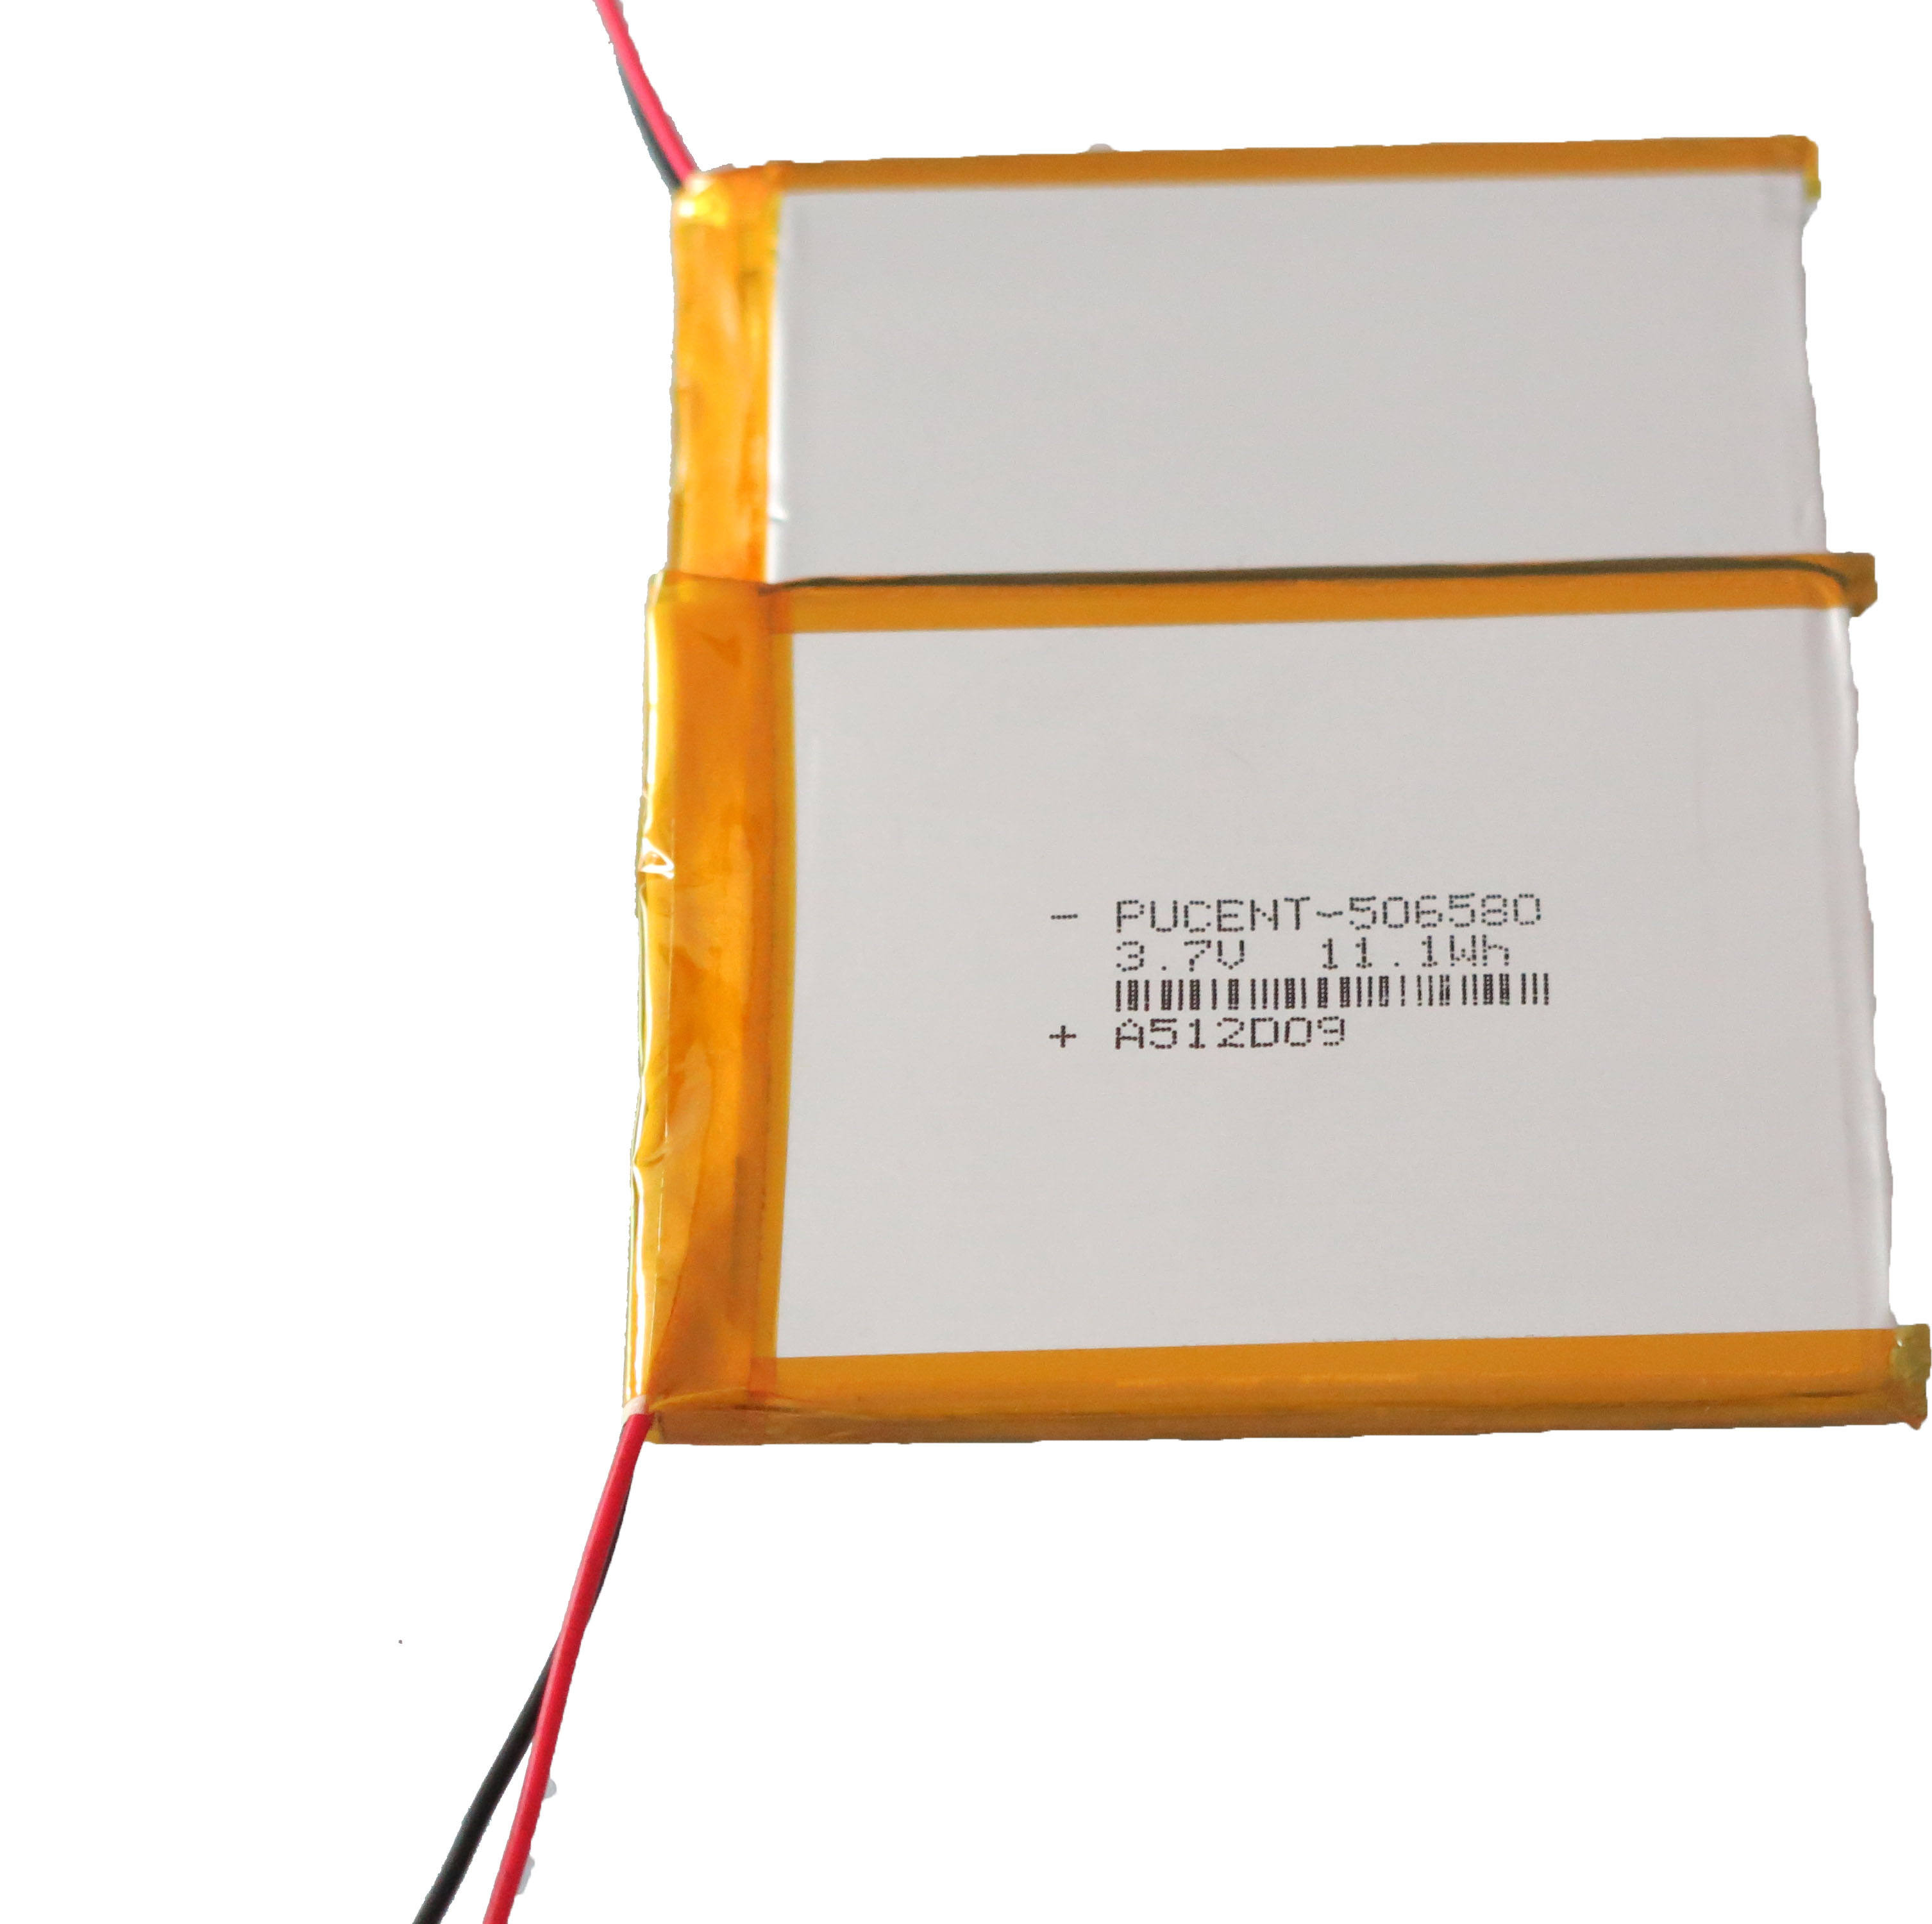 factory direct sale price high quality 506580 li ion 3000mAh 3.7v polymer lithium rechargeable battery